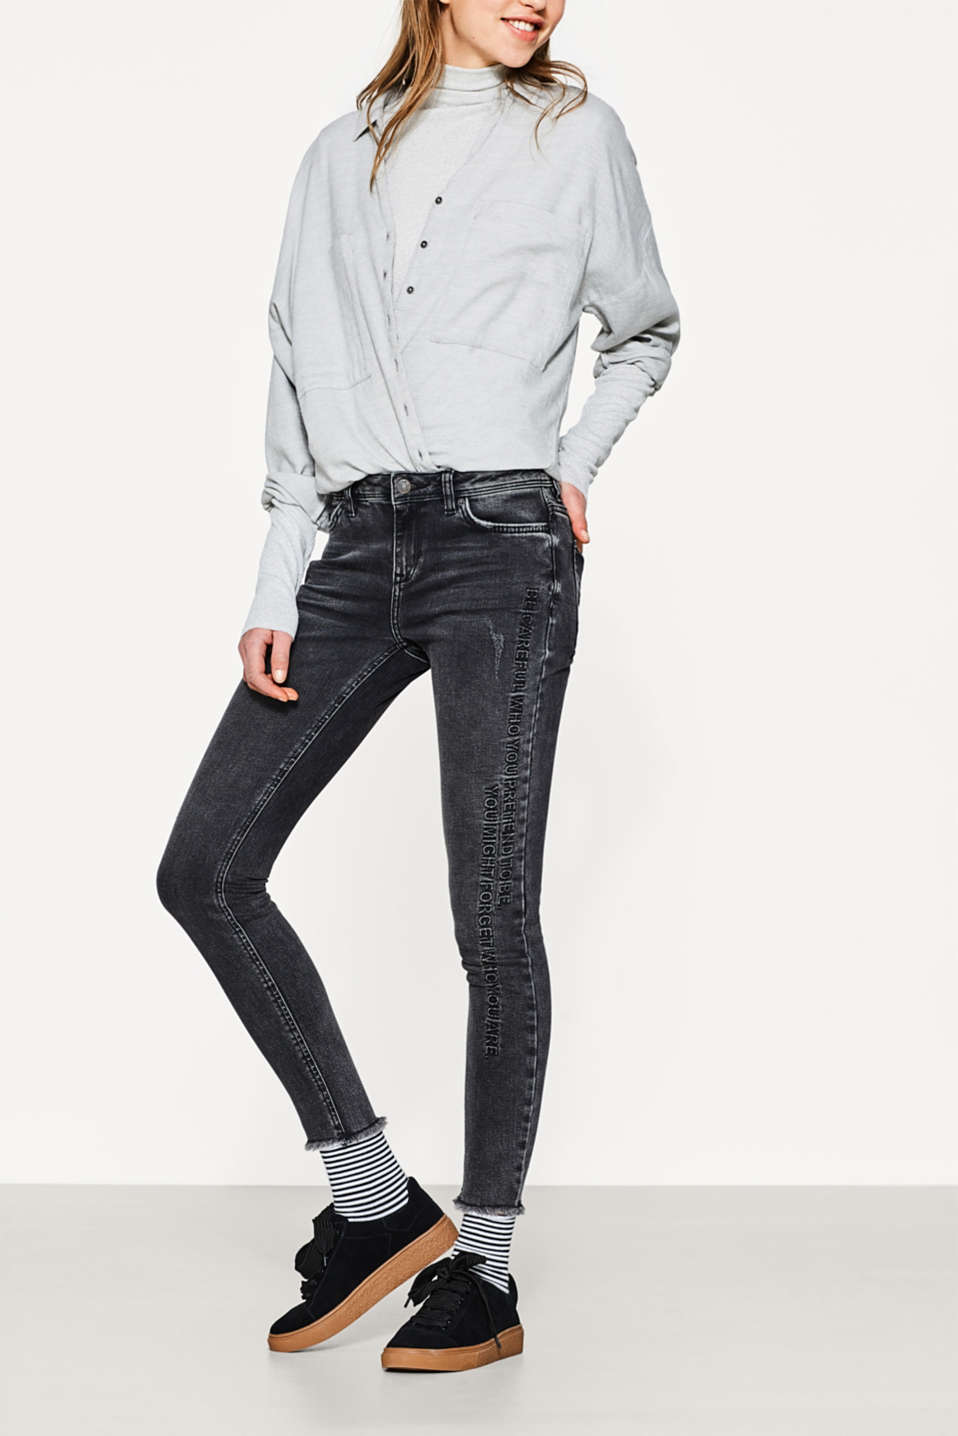 Esprit - Stretch jeans with a textured statement